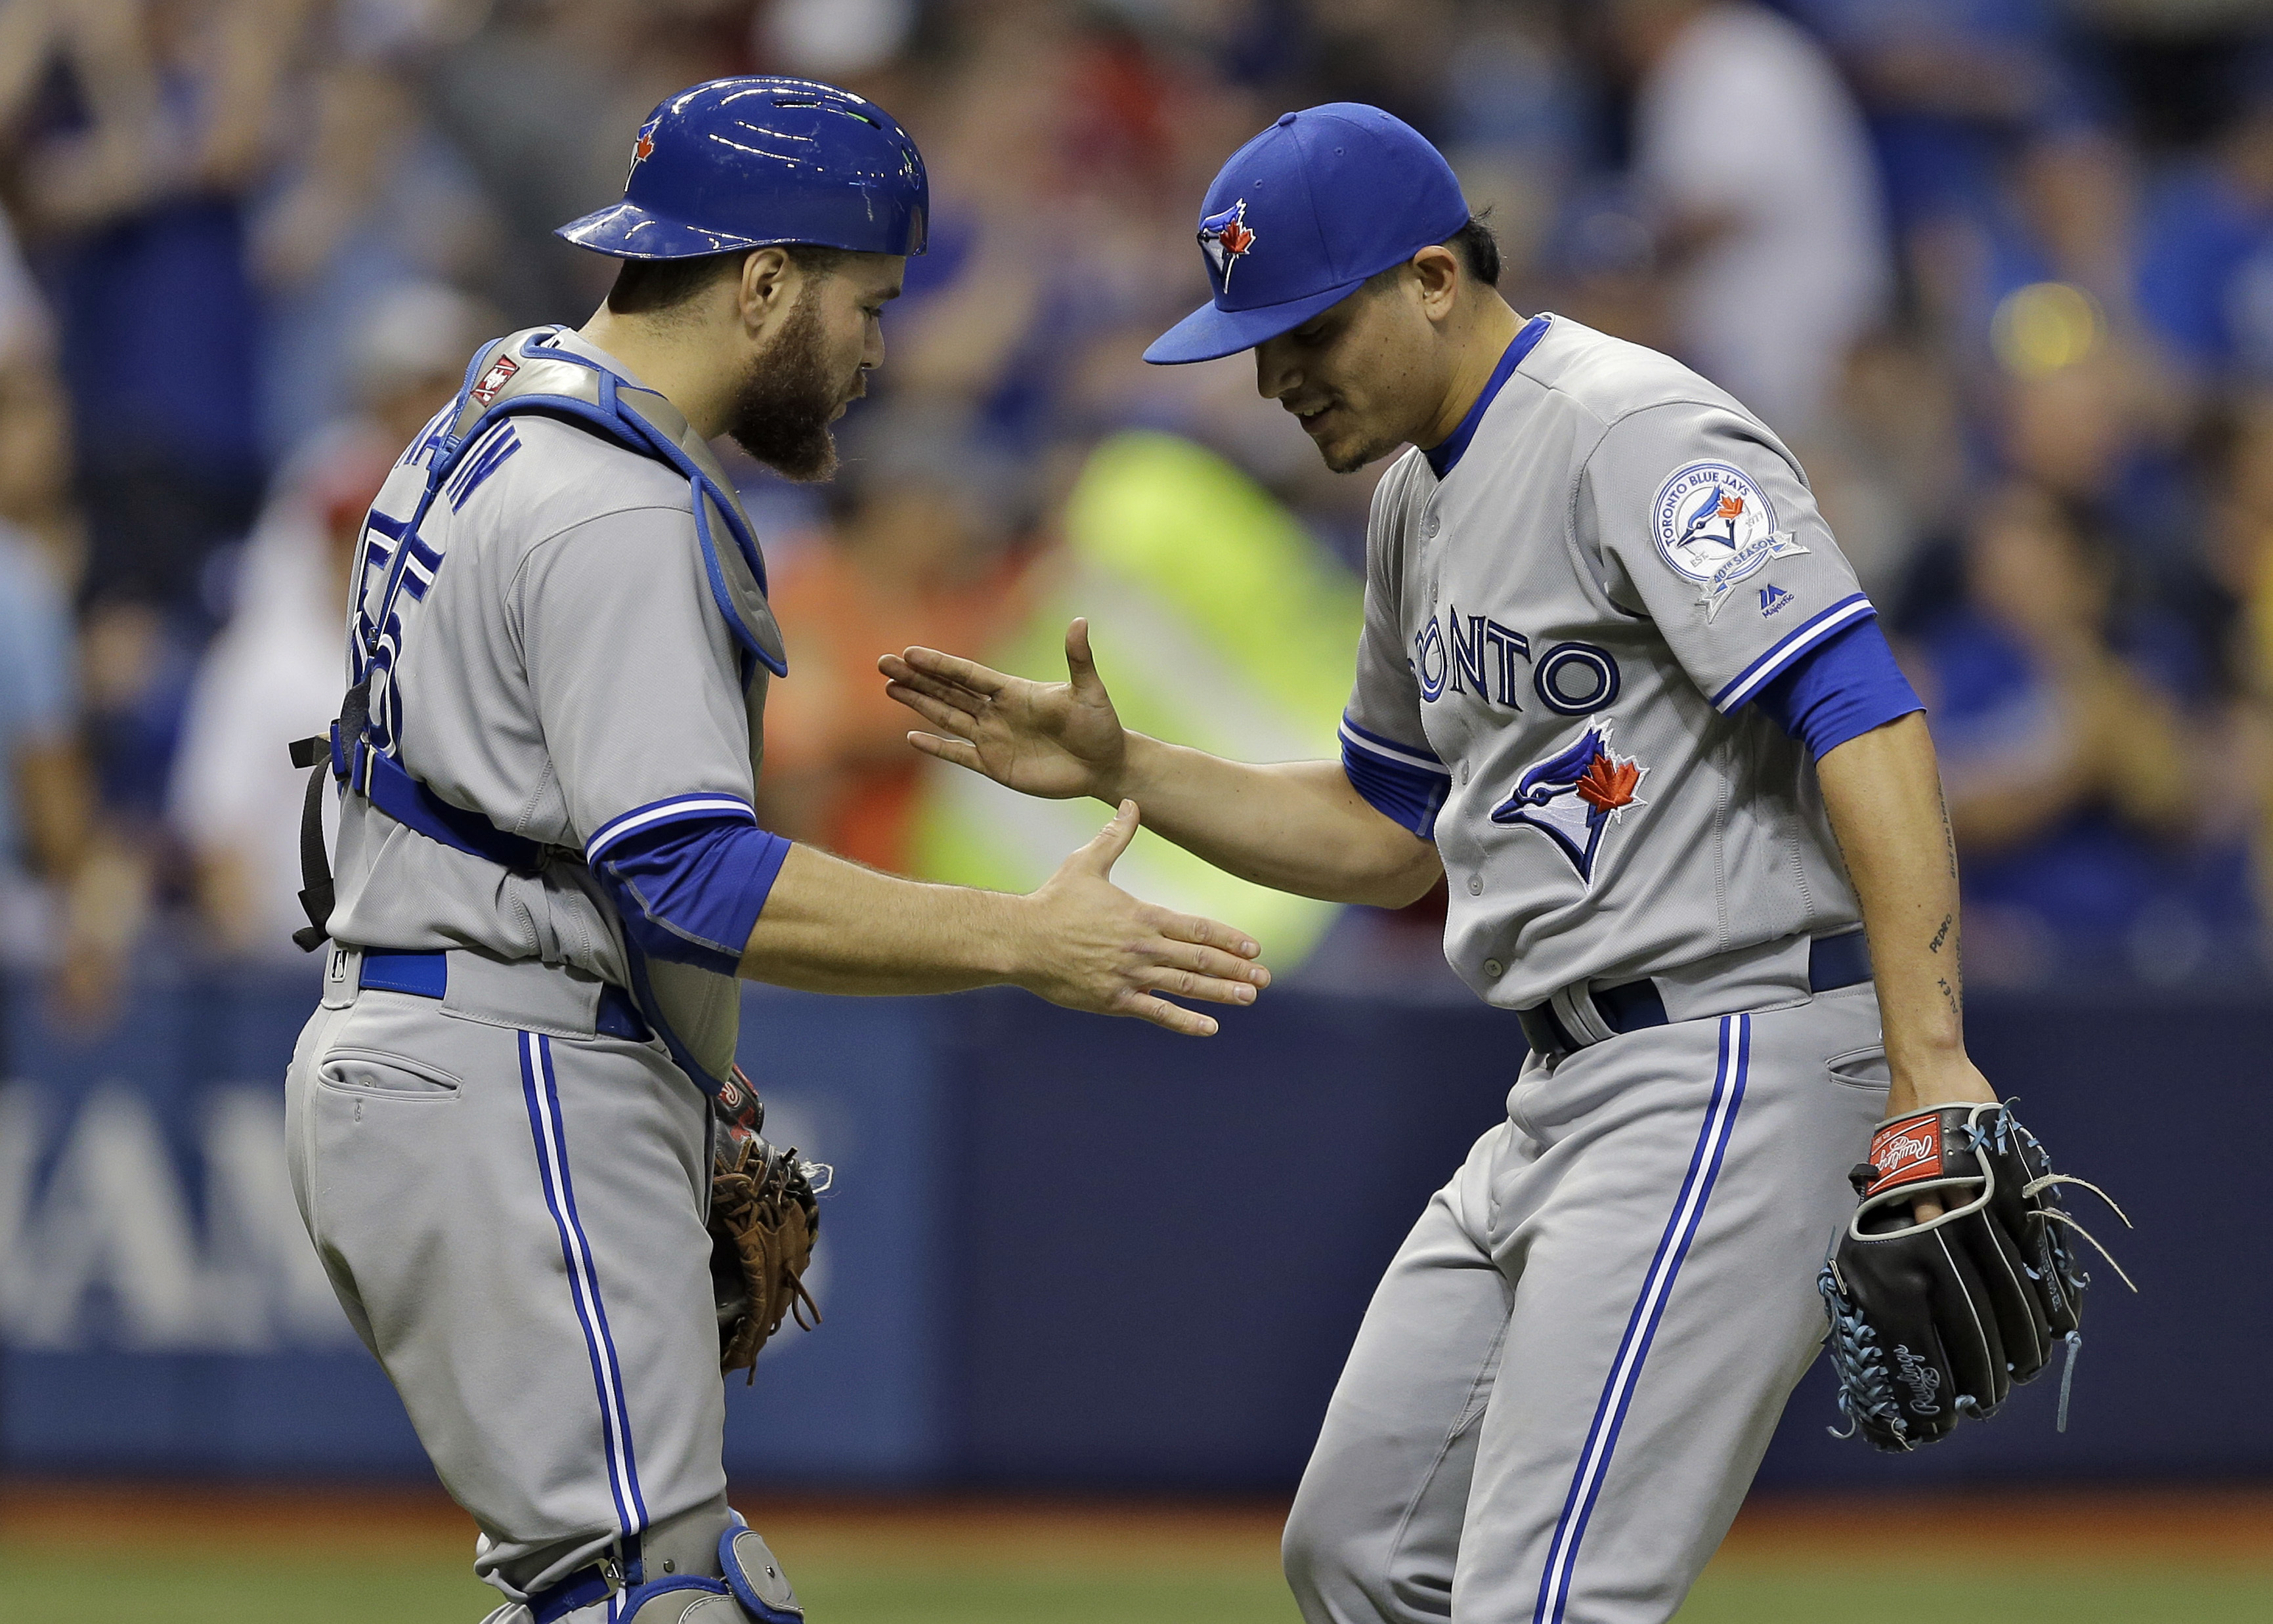 Toronto Blue Jays relief pitcher Roberto Osuna, right, celebrates with catcher Russell Martin after they defeated the Tampa Bay Rays in a baseball game Friday, April 29, 2016, in St. Petersburg, Fla. (AP Photo/Chris O'Meara)